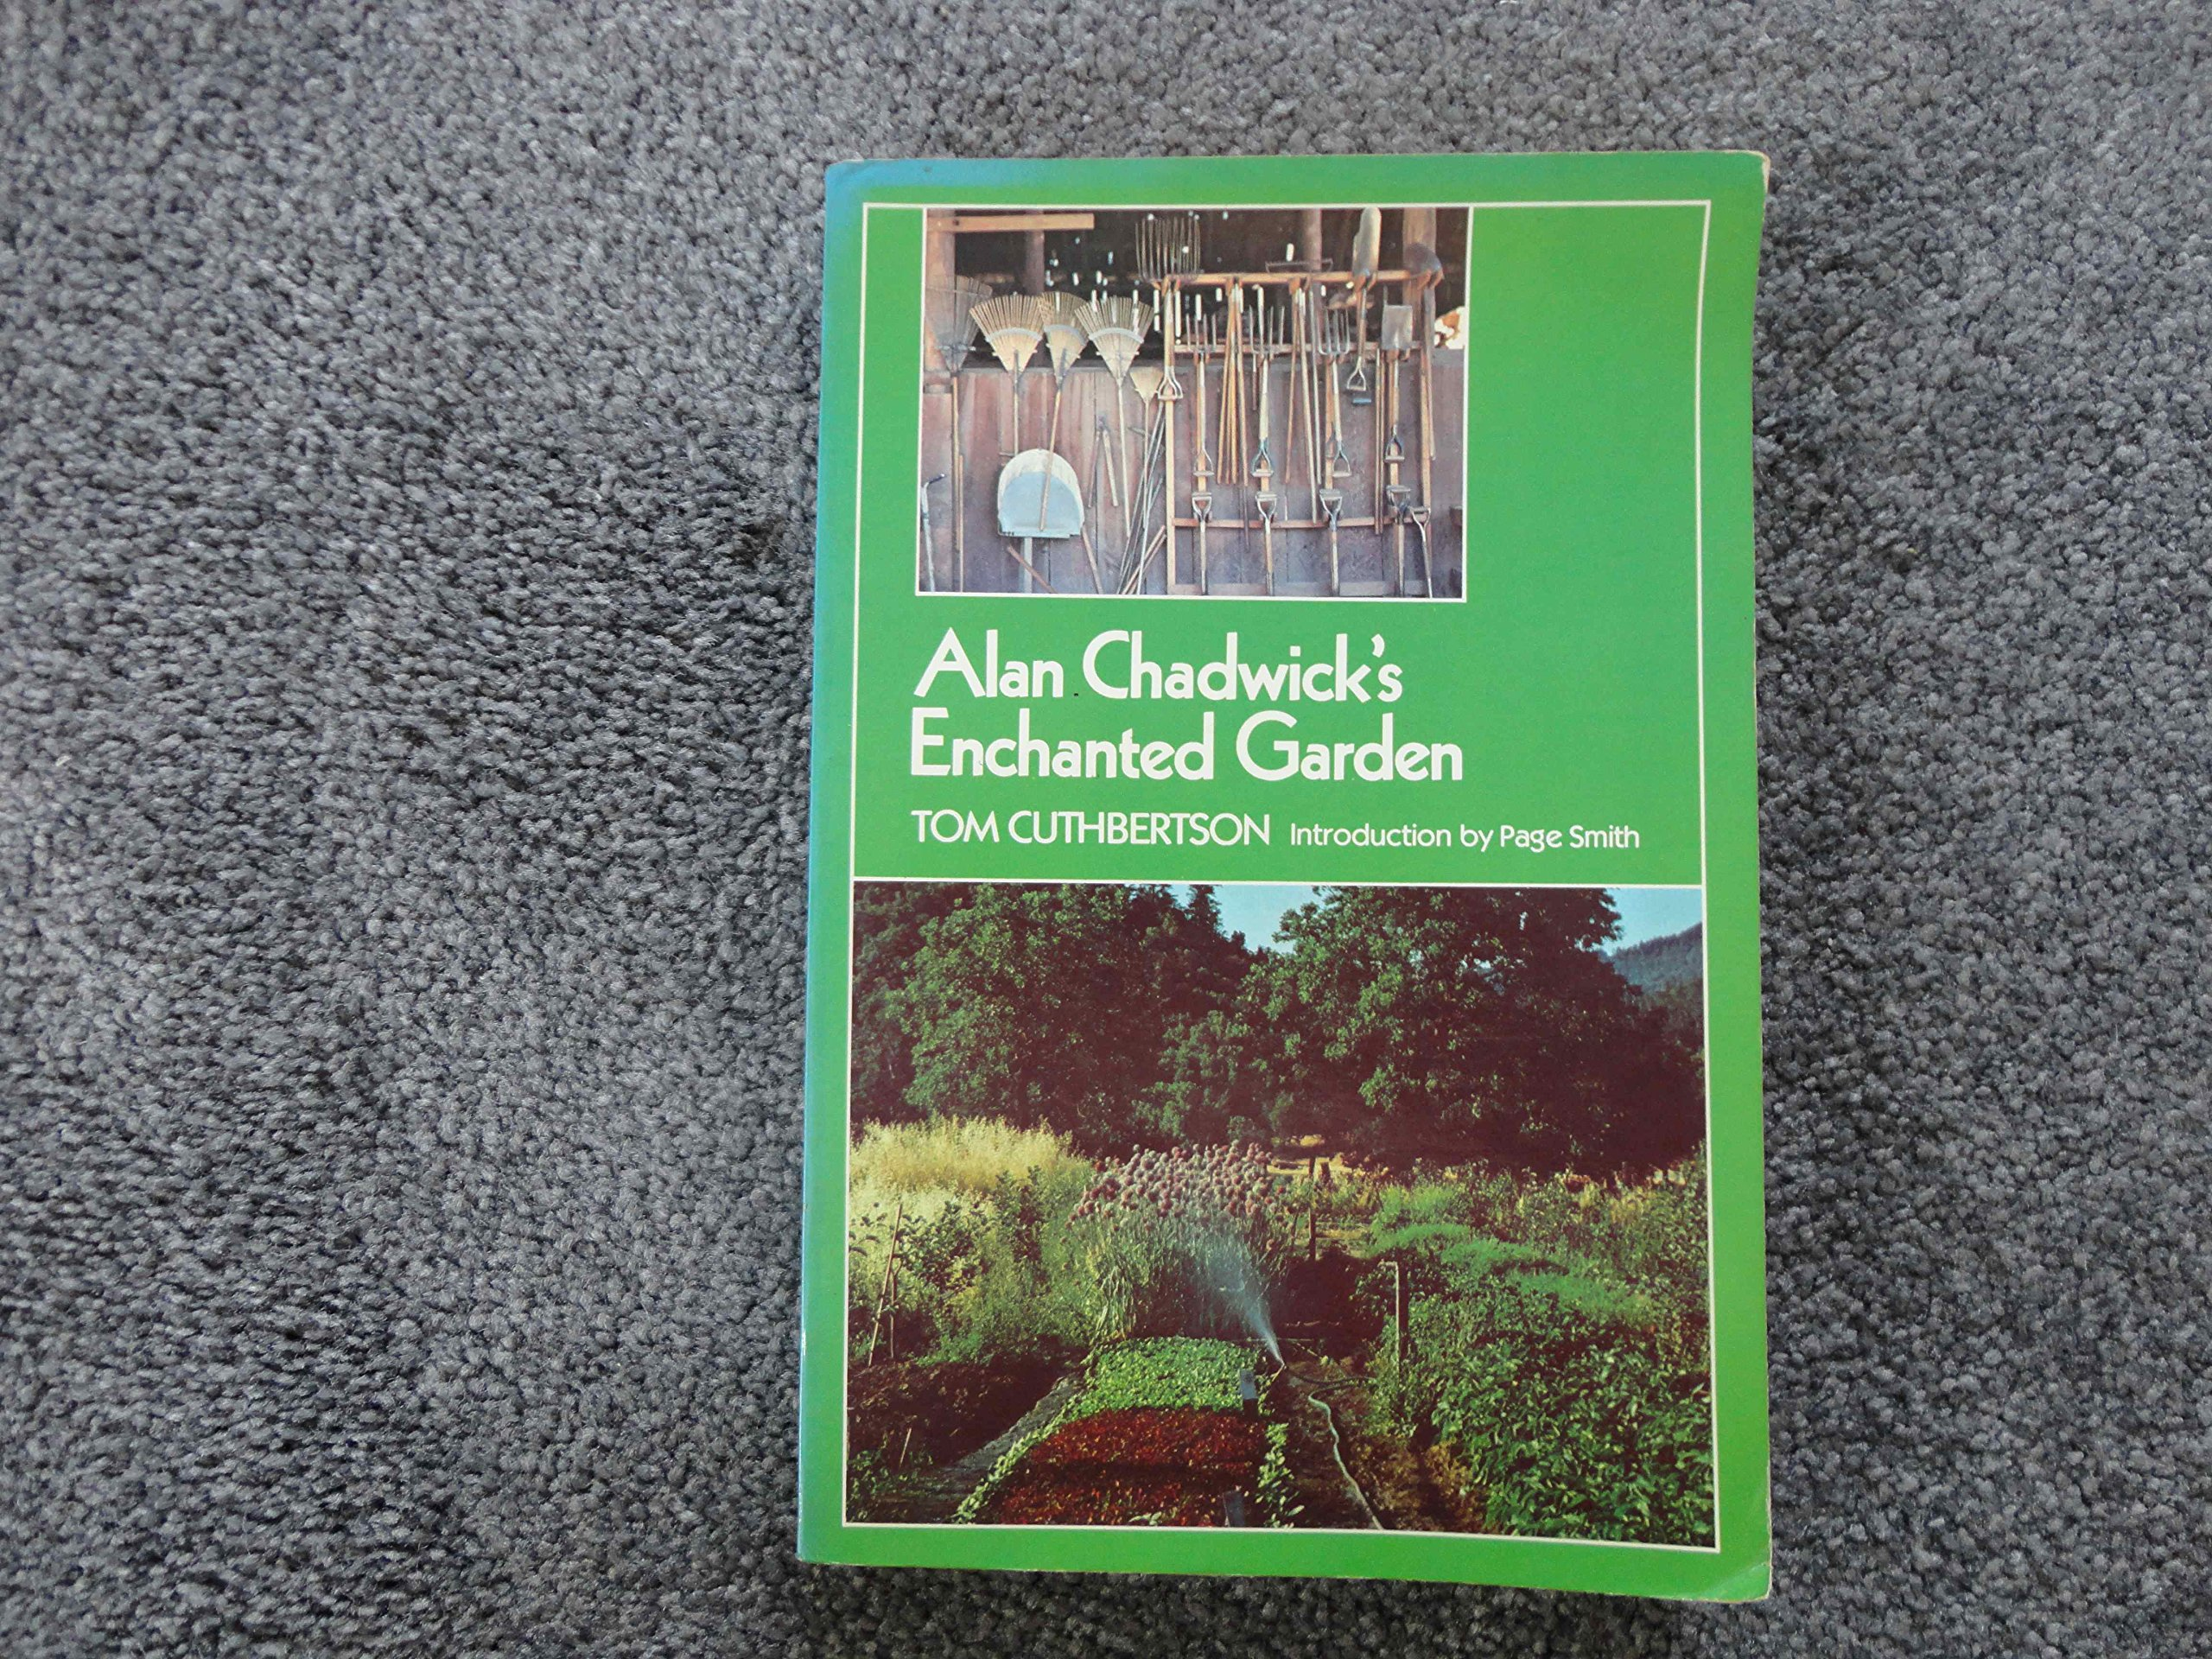 Alan Chadwick's Enchanted Garden, Tom Cuthbertson